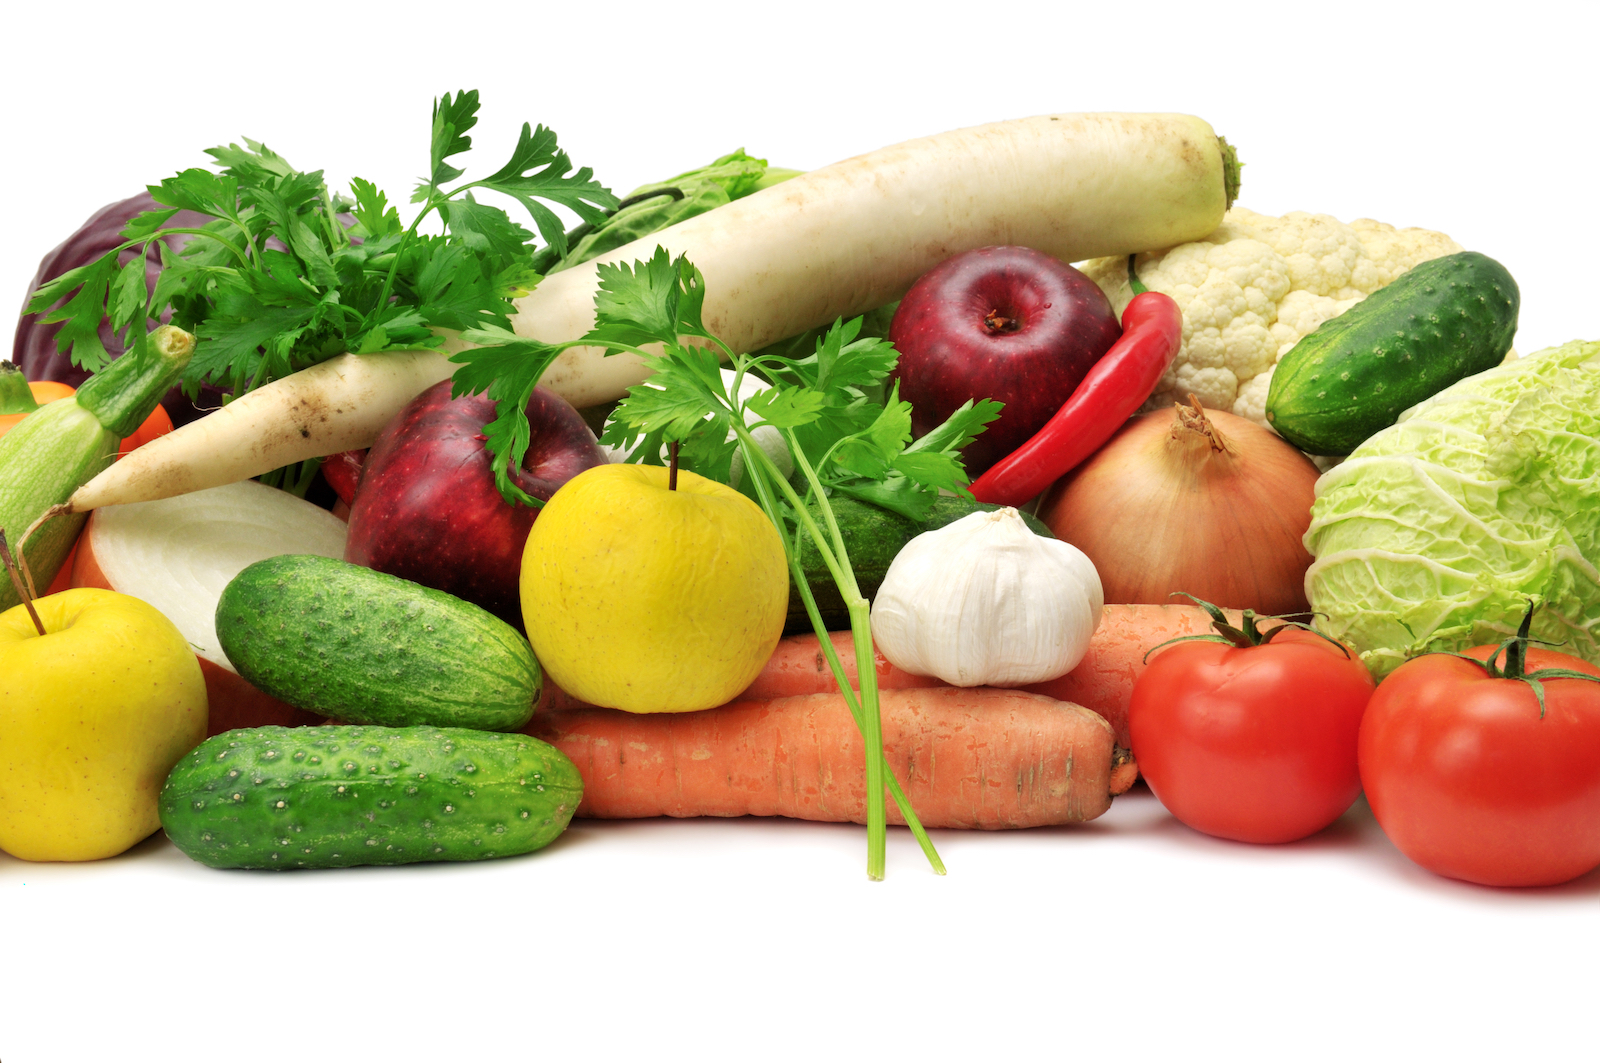 Fruits and Vegetables   How You Can Really Enjoy The Benefits of Going Vegan